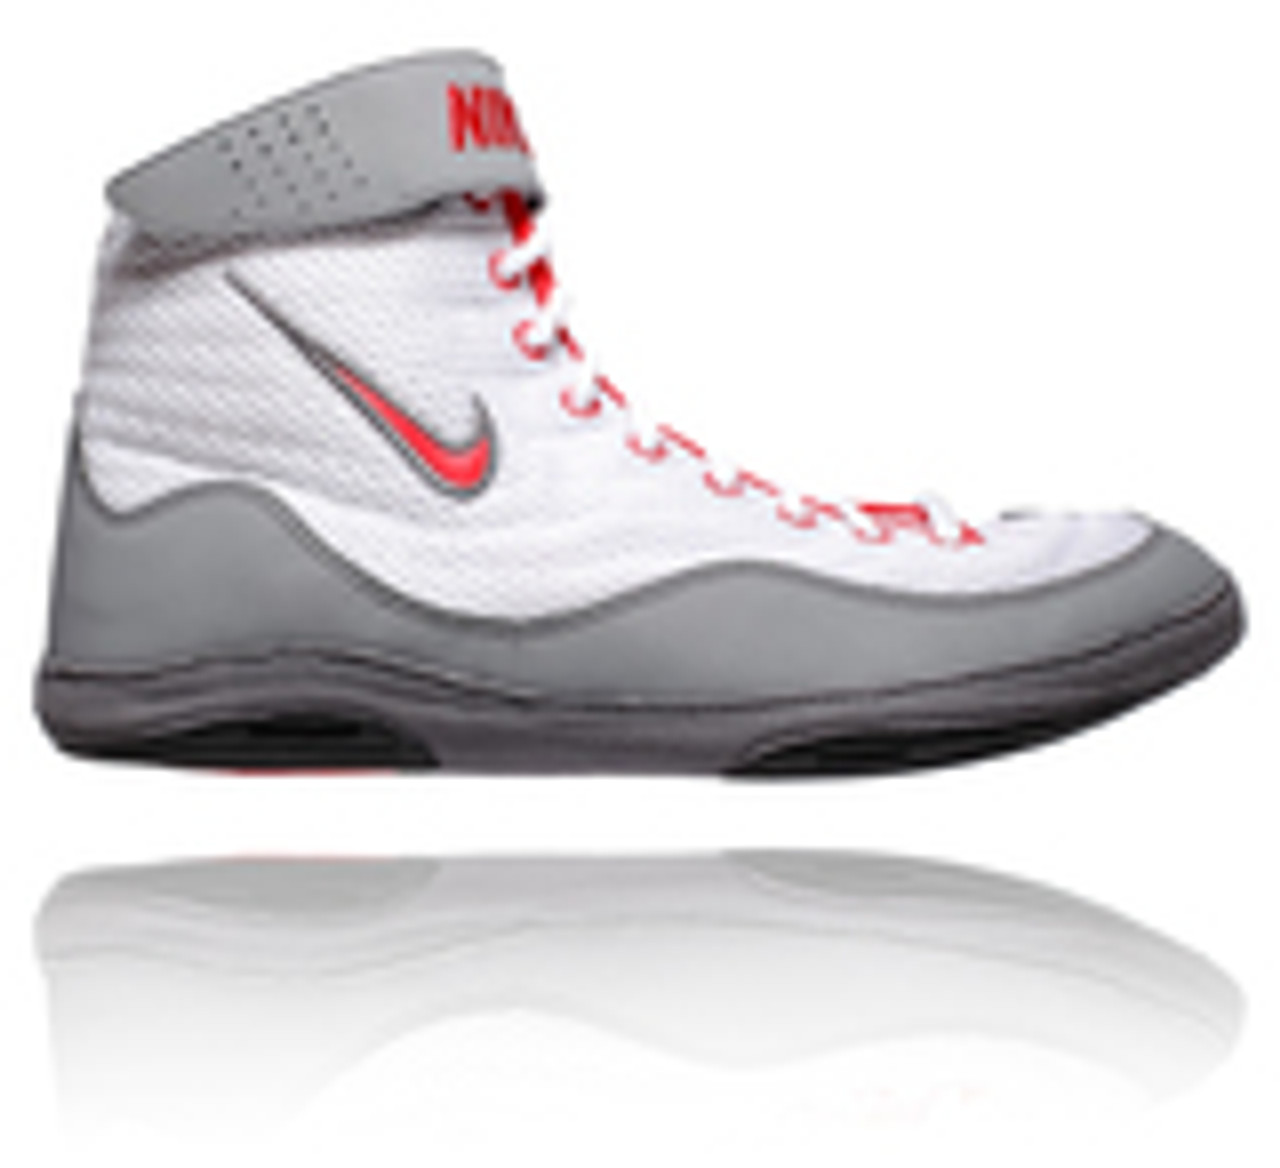 Nike Inflict 3 - White / Uni Red Cool